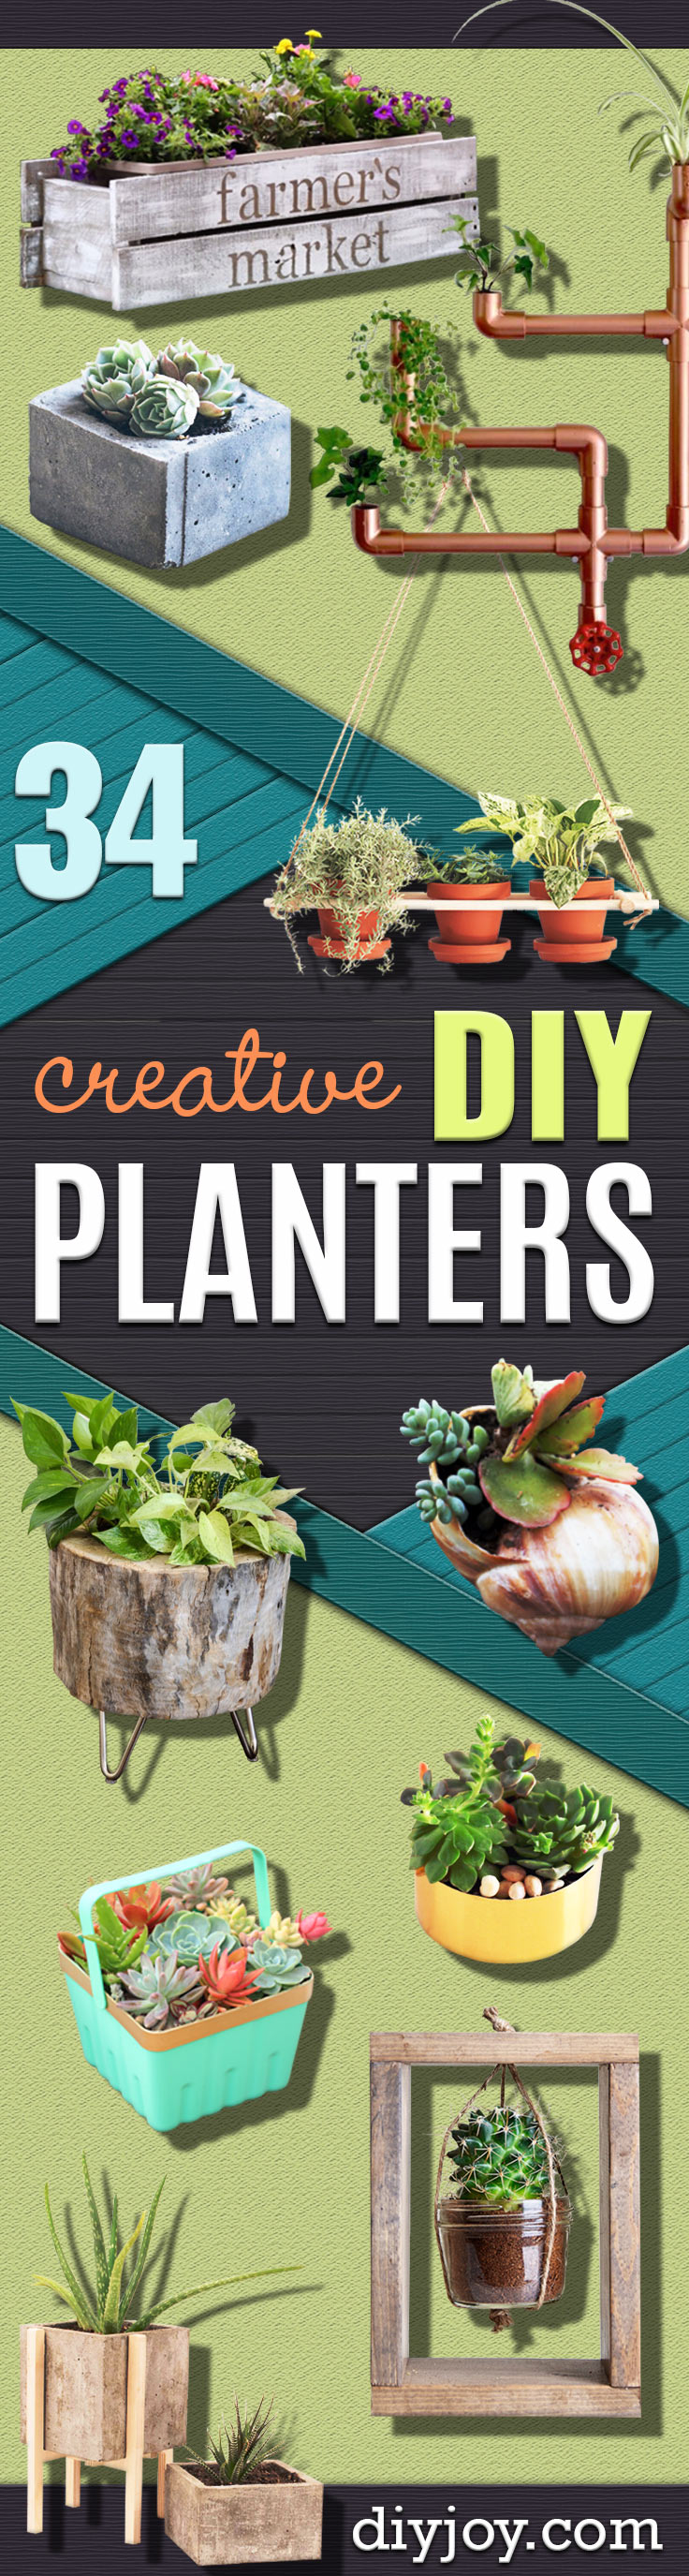 Creative DIY Planters - Best Do It Yourself Planters and Crafts You Can Make For Your Plants - Indoor and Outdoor Gardening Ideas - Cool Modern and Rustic Home and Room Decor for Planting With Step by Step Tutorials